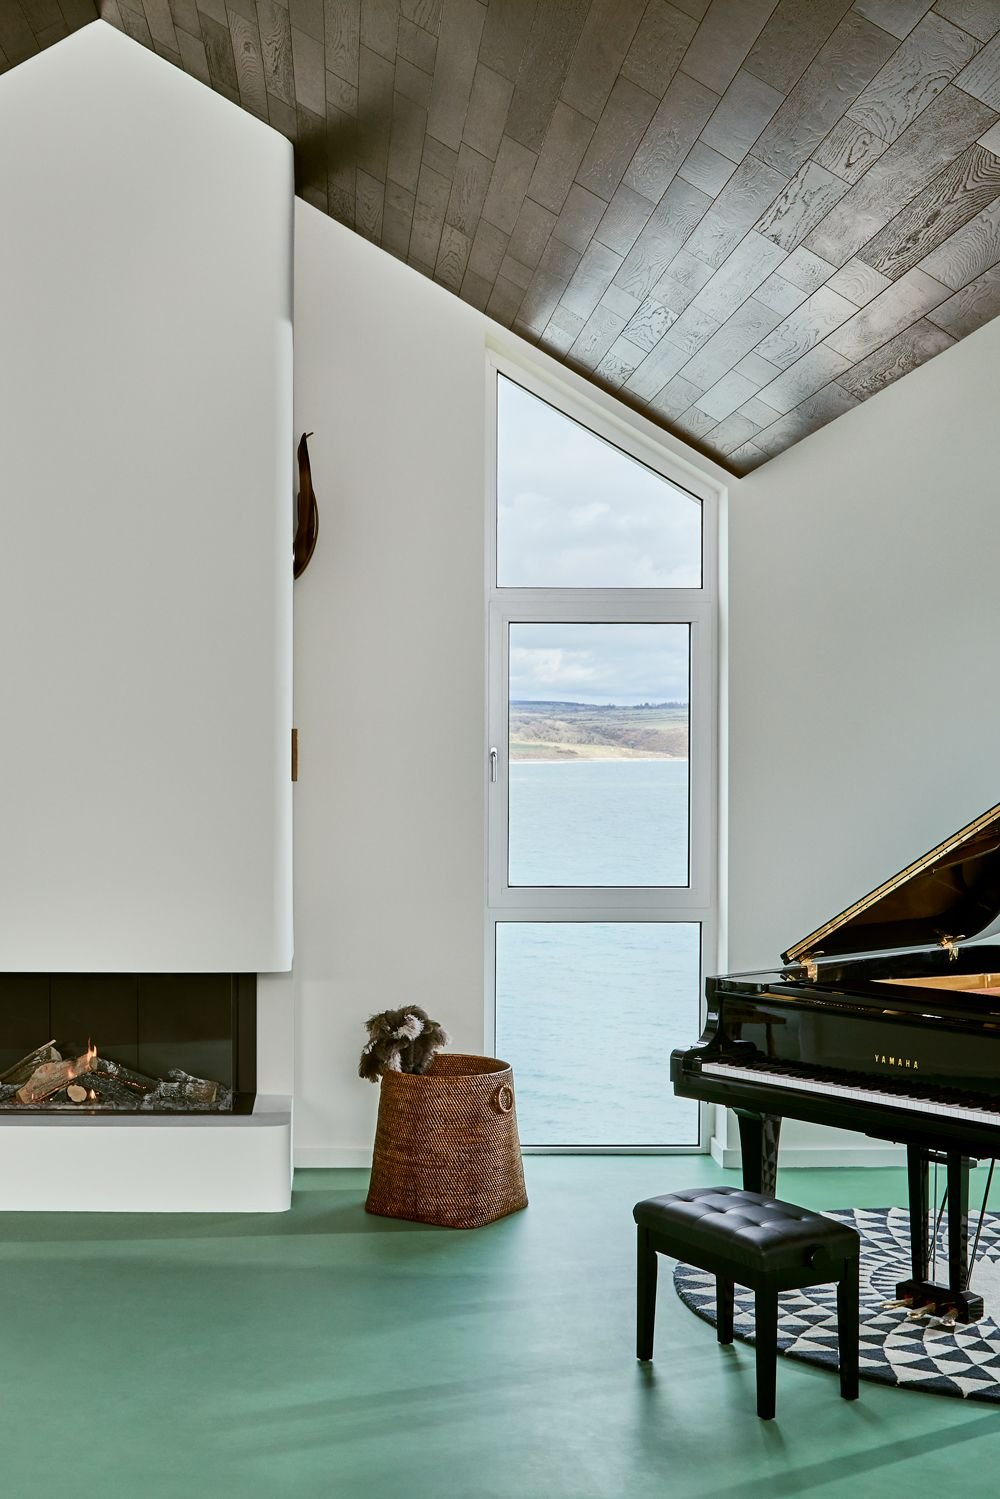 Explore A Modern Beach House In Ireland With Floor-To-Ceiling Sea Views